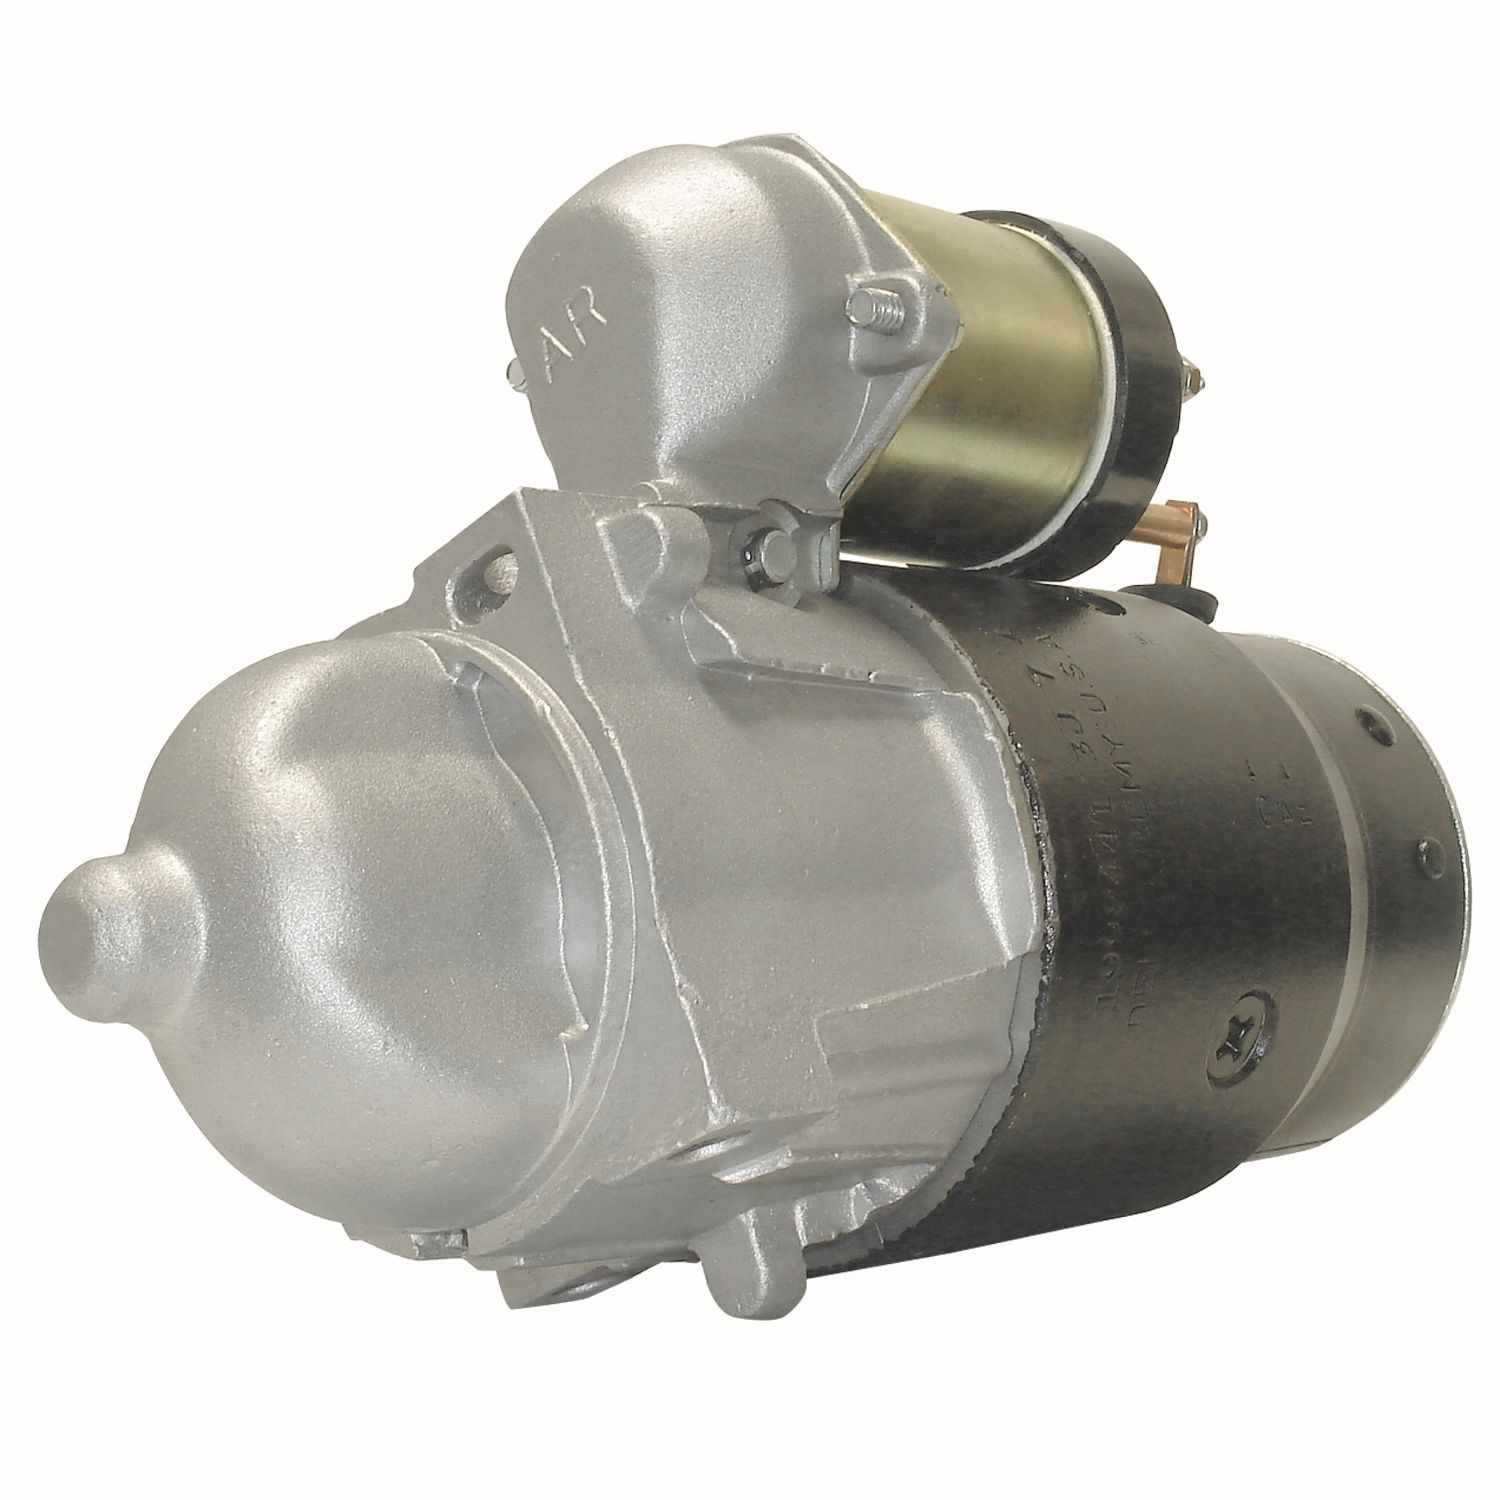 ACDELCO GOLD/PROFESSIONAL - Reman Starter Motor - DCC 336-1823A